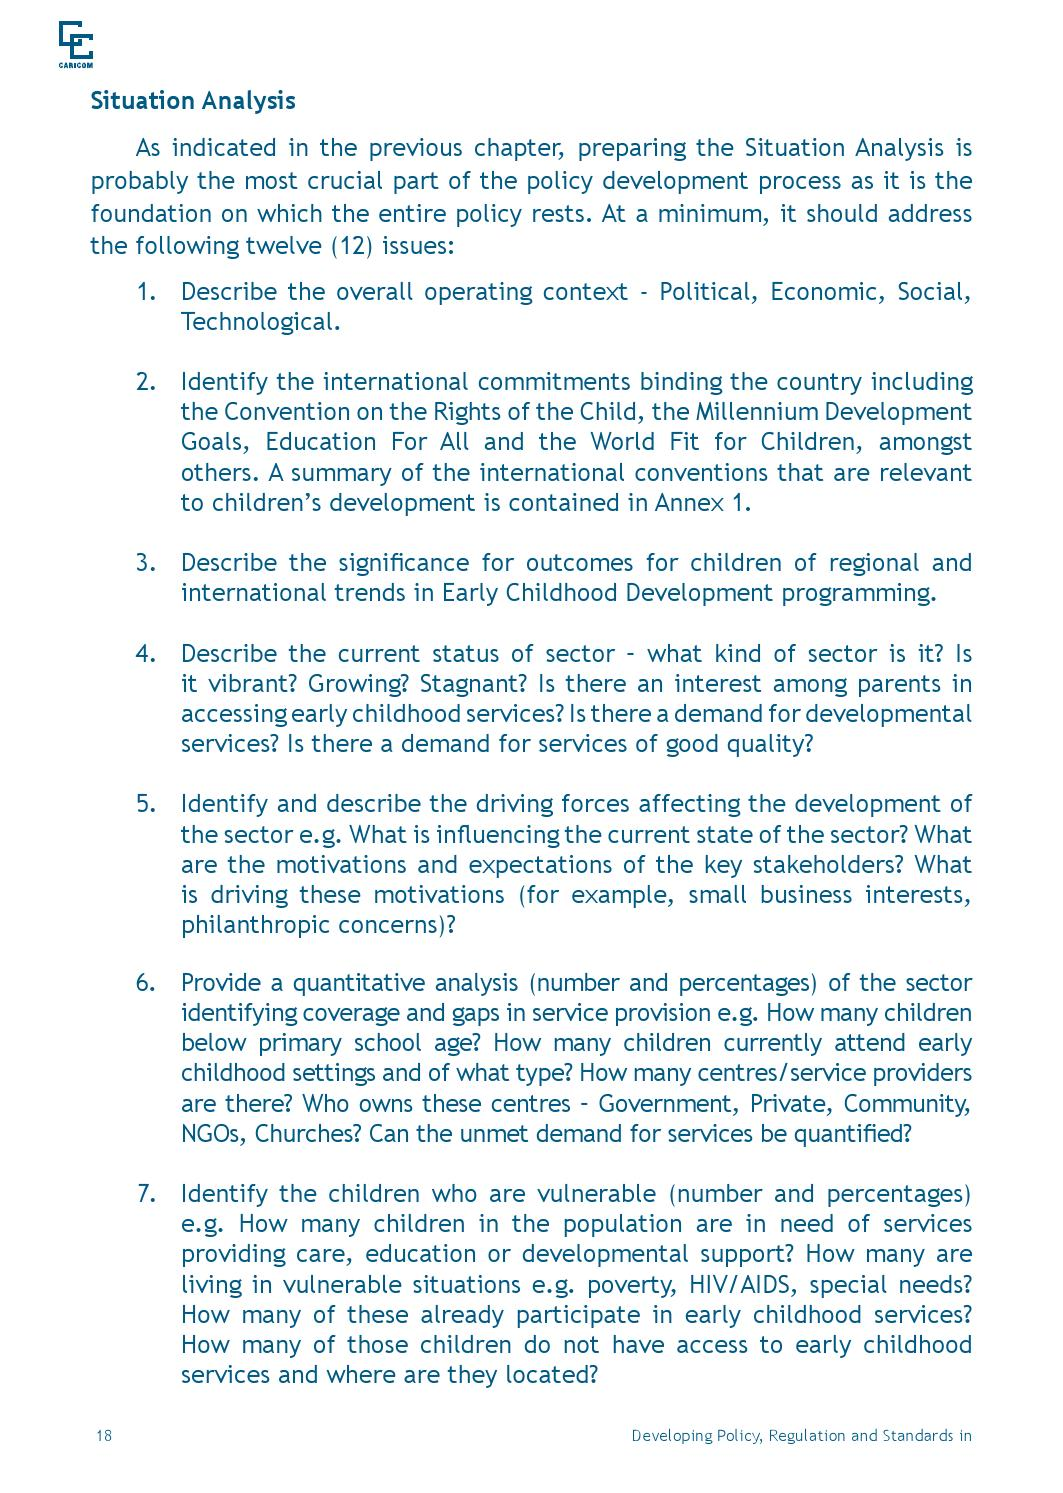 Early Childhood Development Guidelines By Caribbean Community